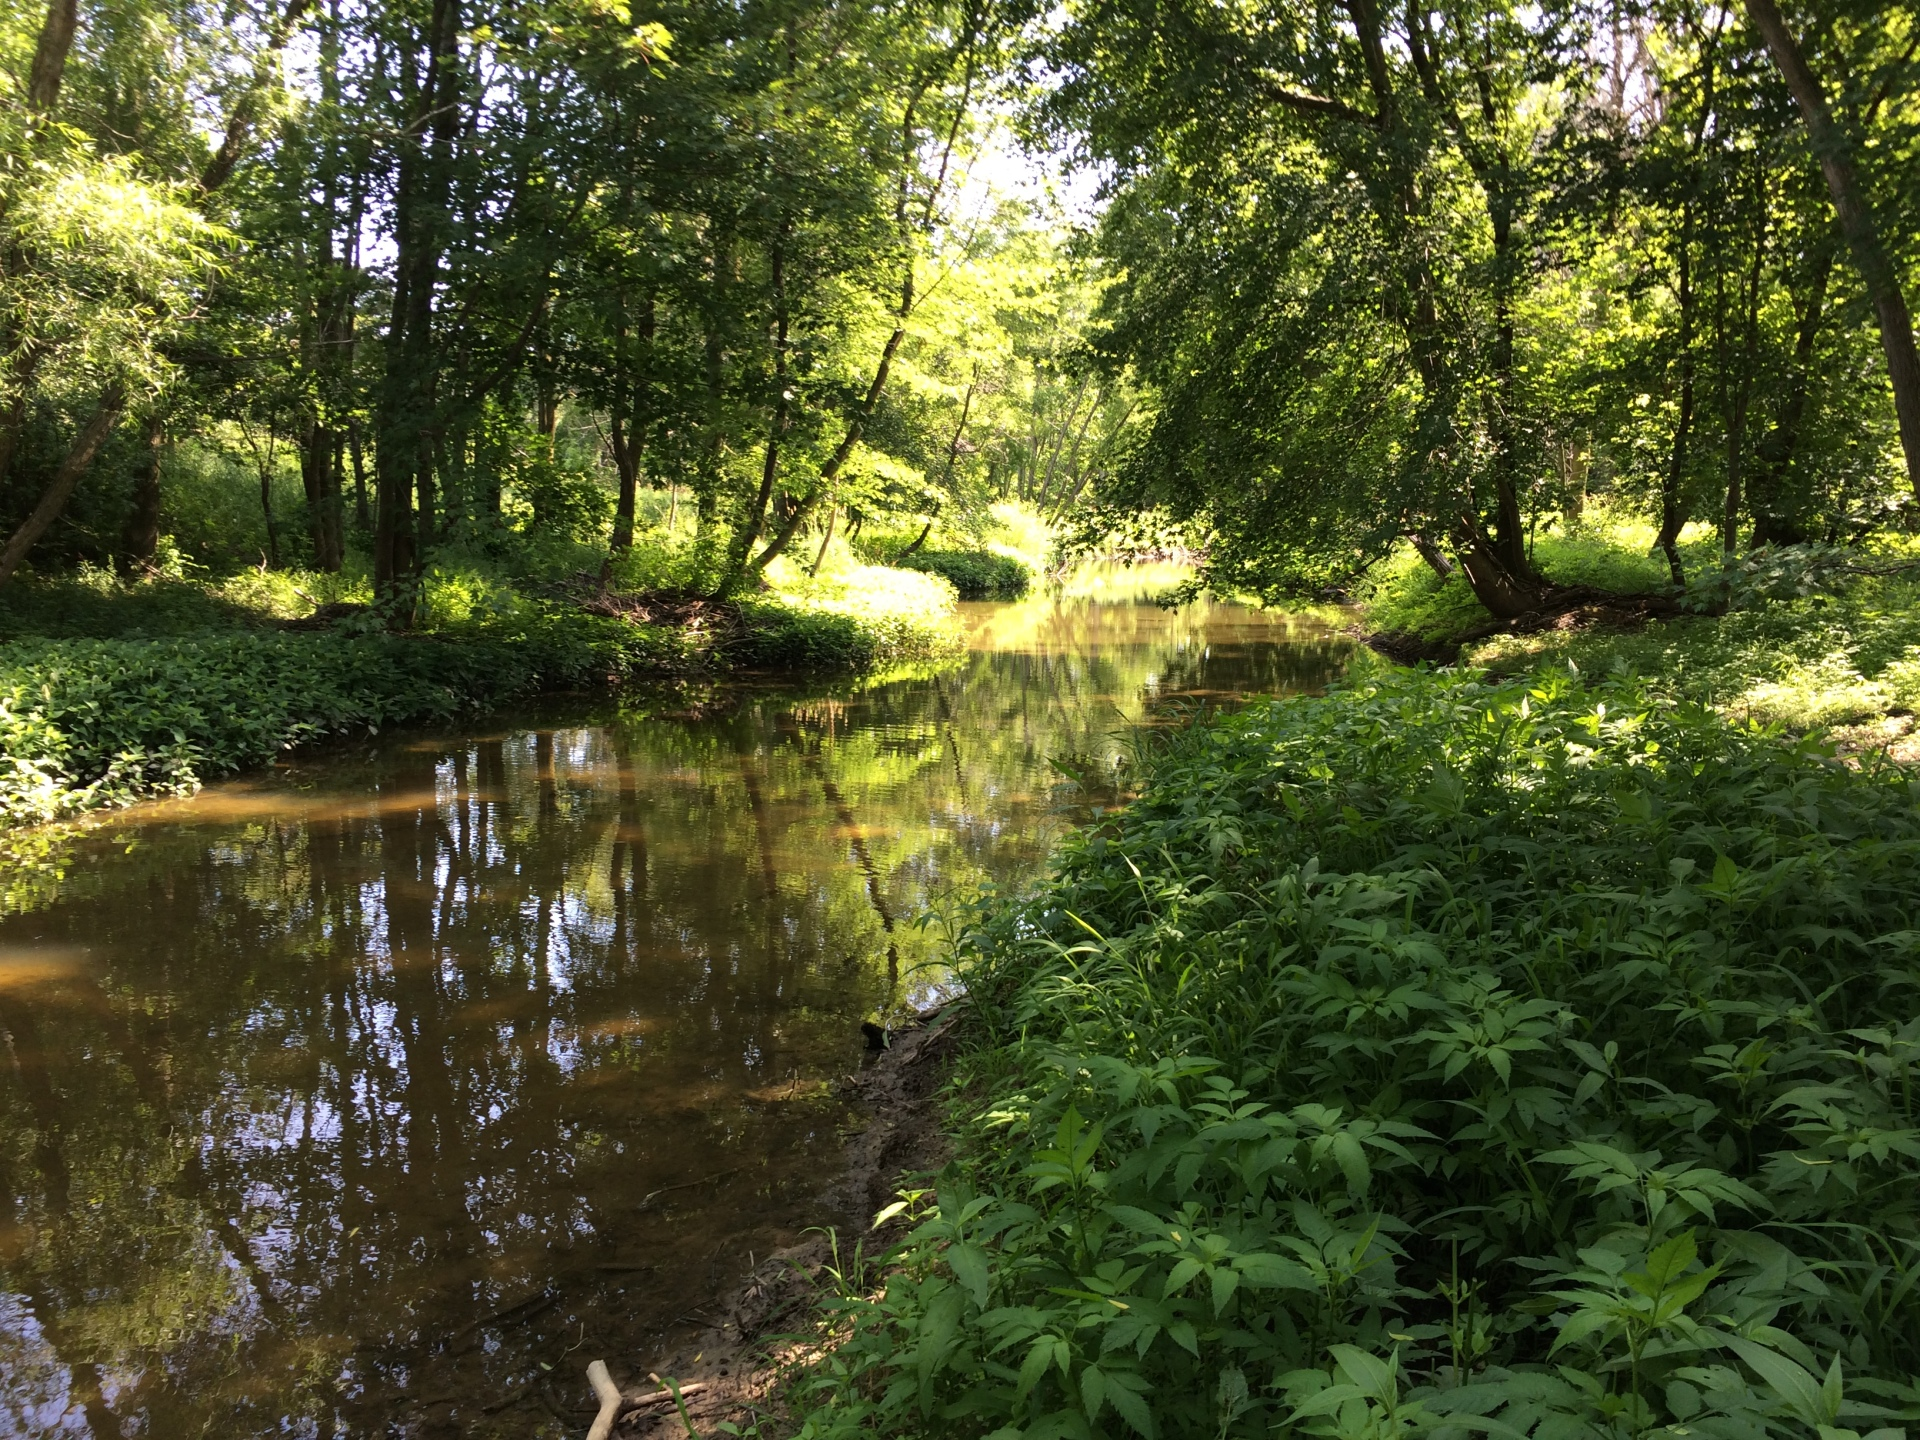 Riparian woodlands stabilize riverbanks and provide quality habitat for plants and animals.